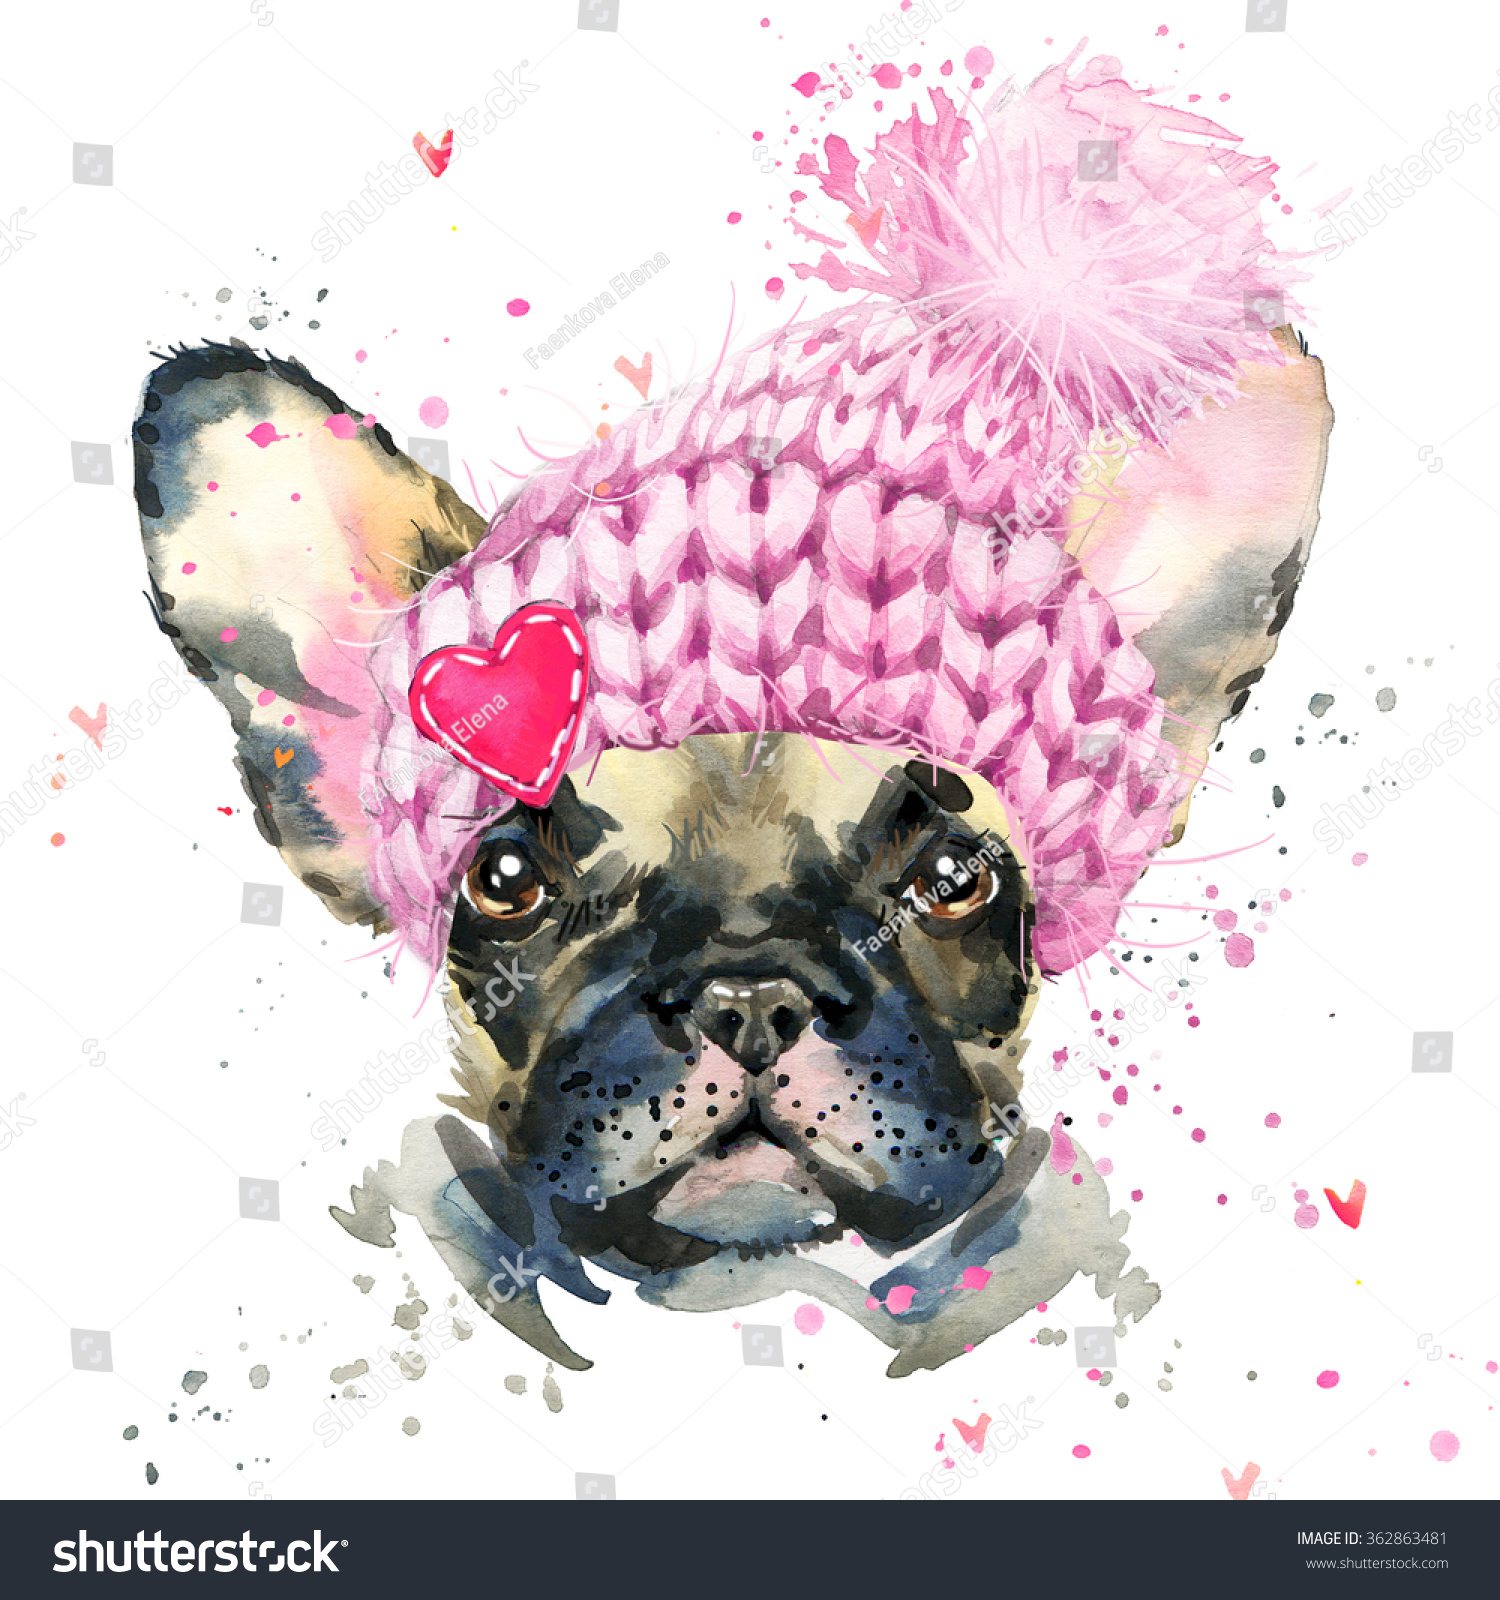 French Bulldog Cute dog Watercolor puppy dog illustration French Bulldog breed